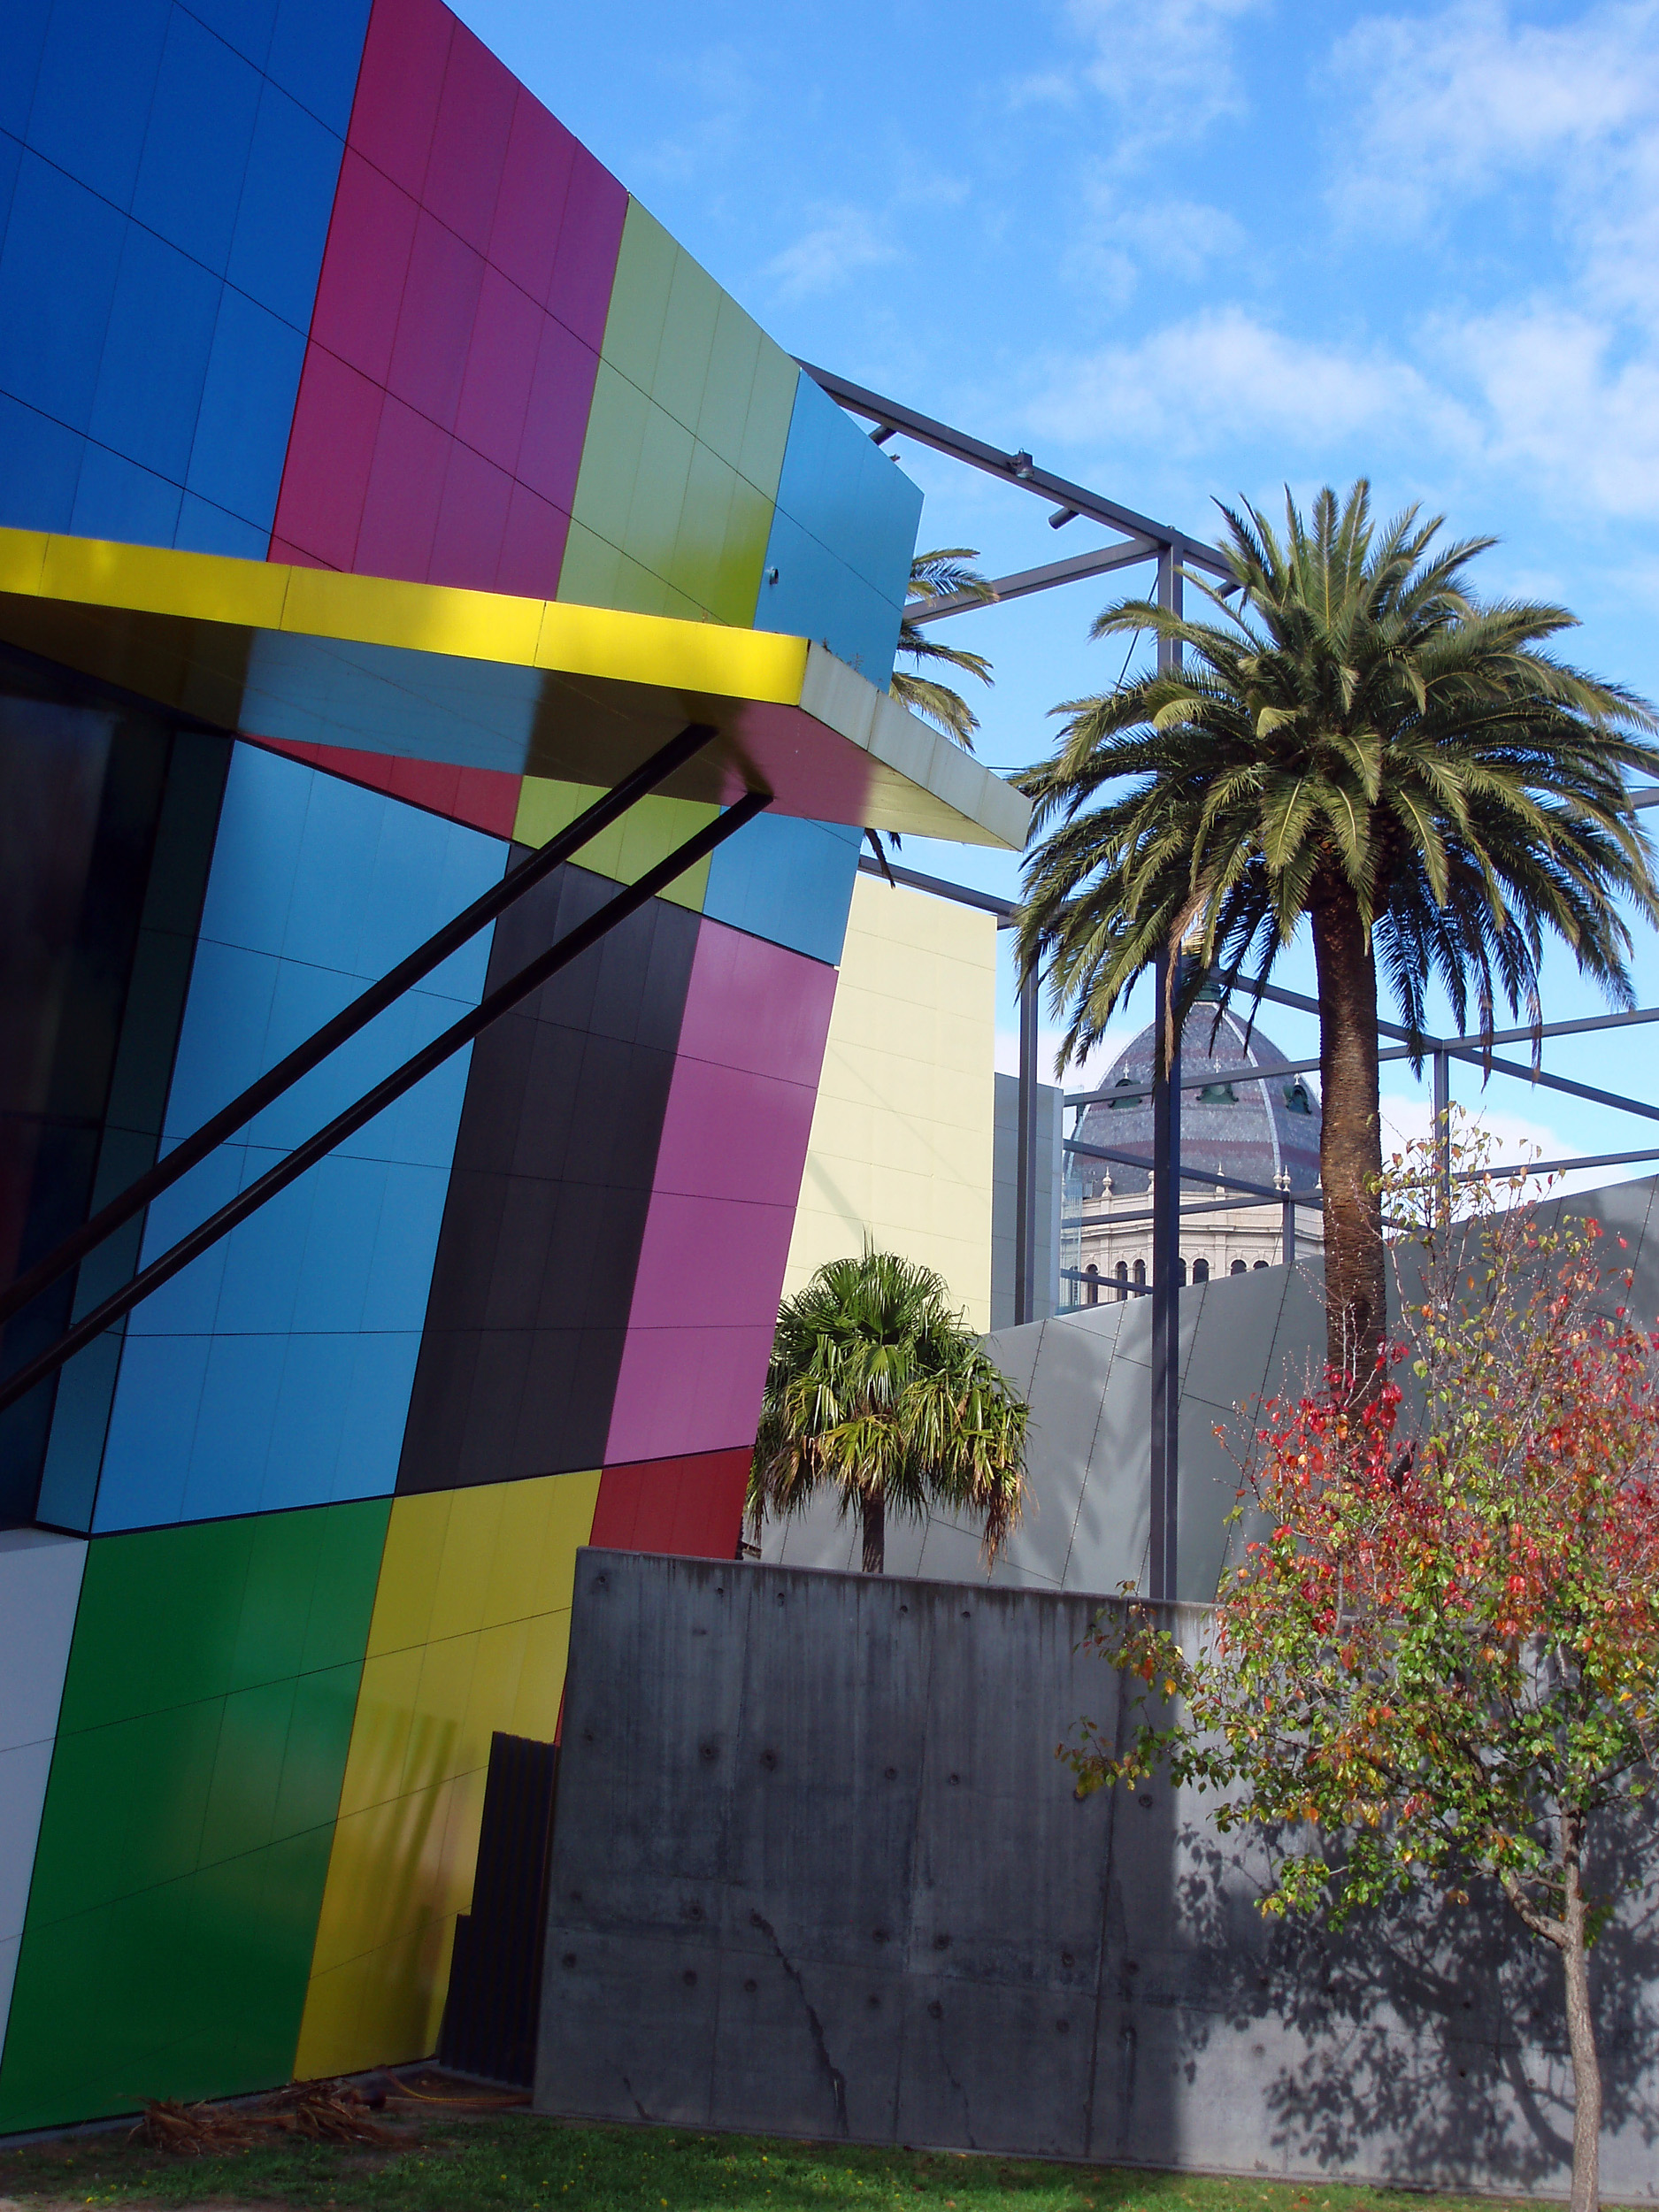 eye catching modern architecture, the childrens gallery of the melbourne museum